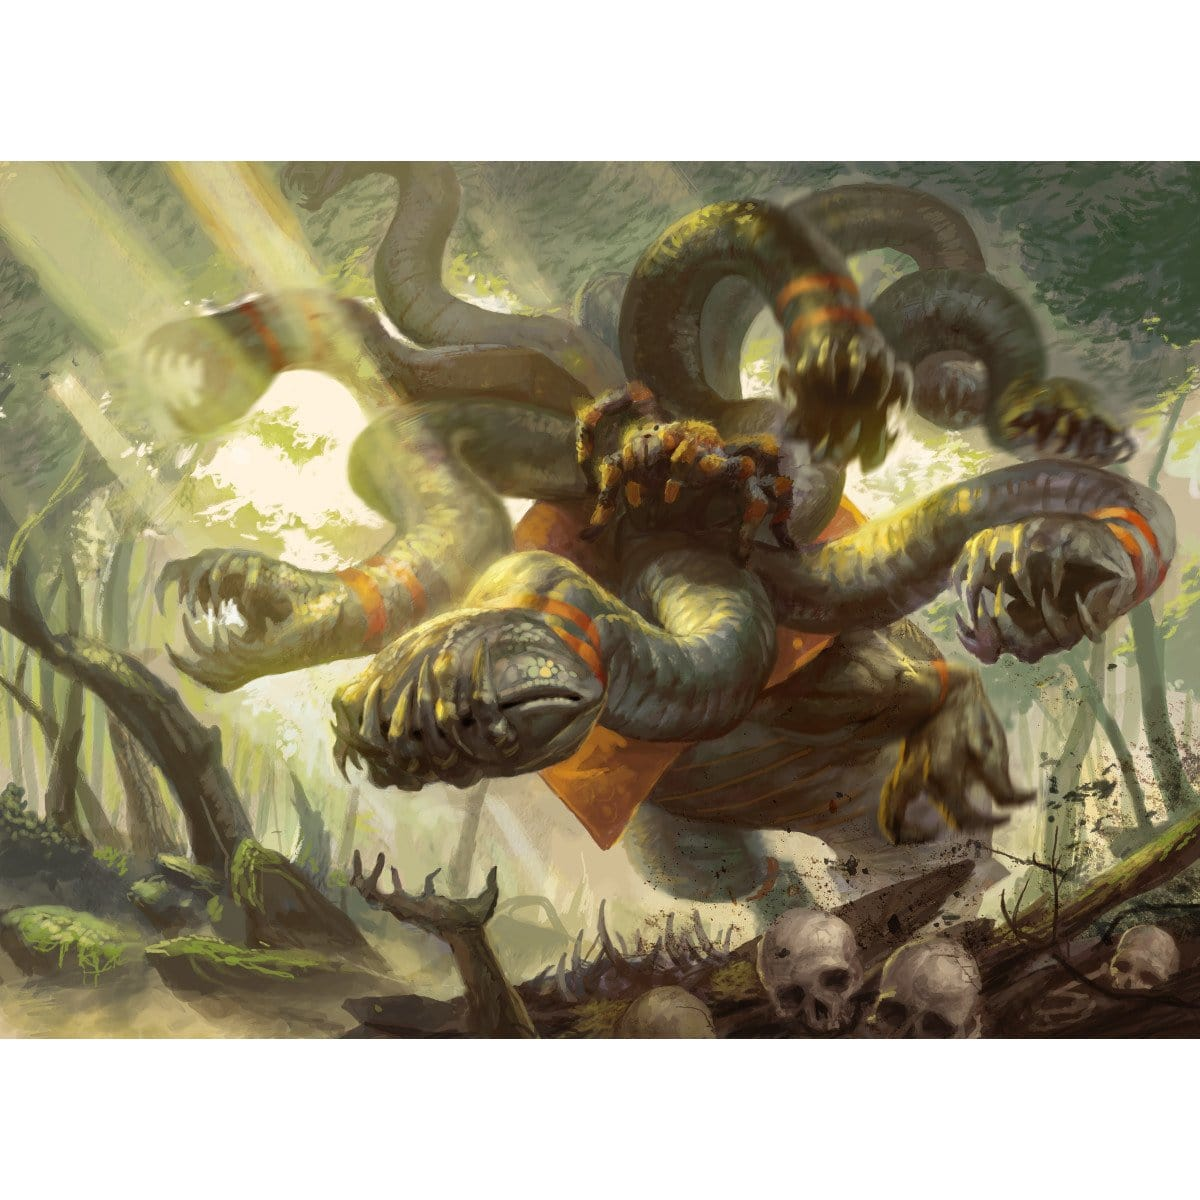 Genesis Hydra Print - Print - Original Magic Art - Accessories for Magic the Gathering and other card games